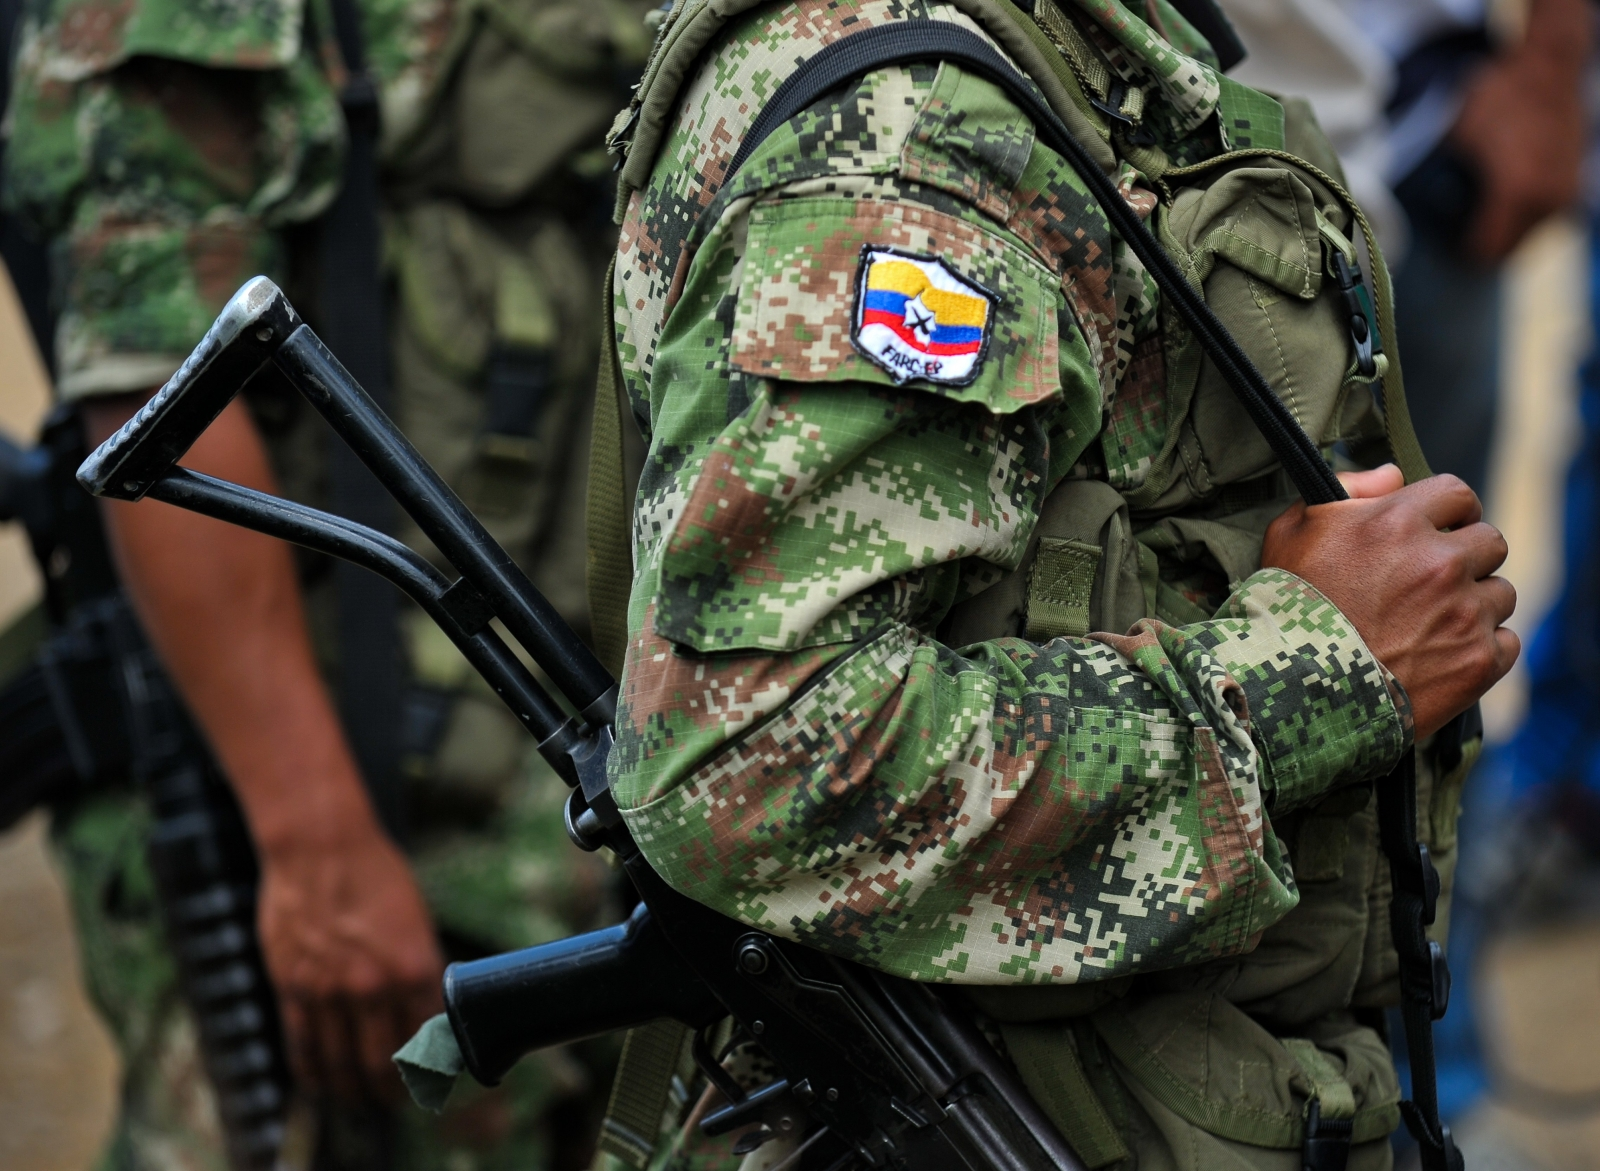 Member of the FARC rebel group. (Getty)